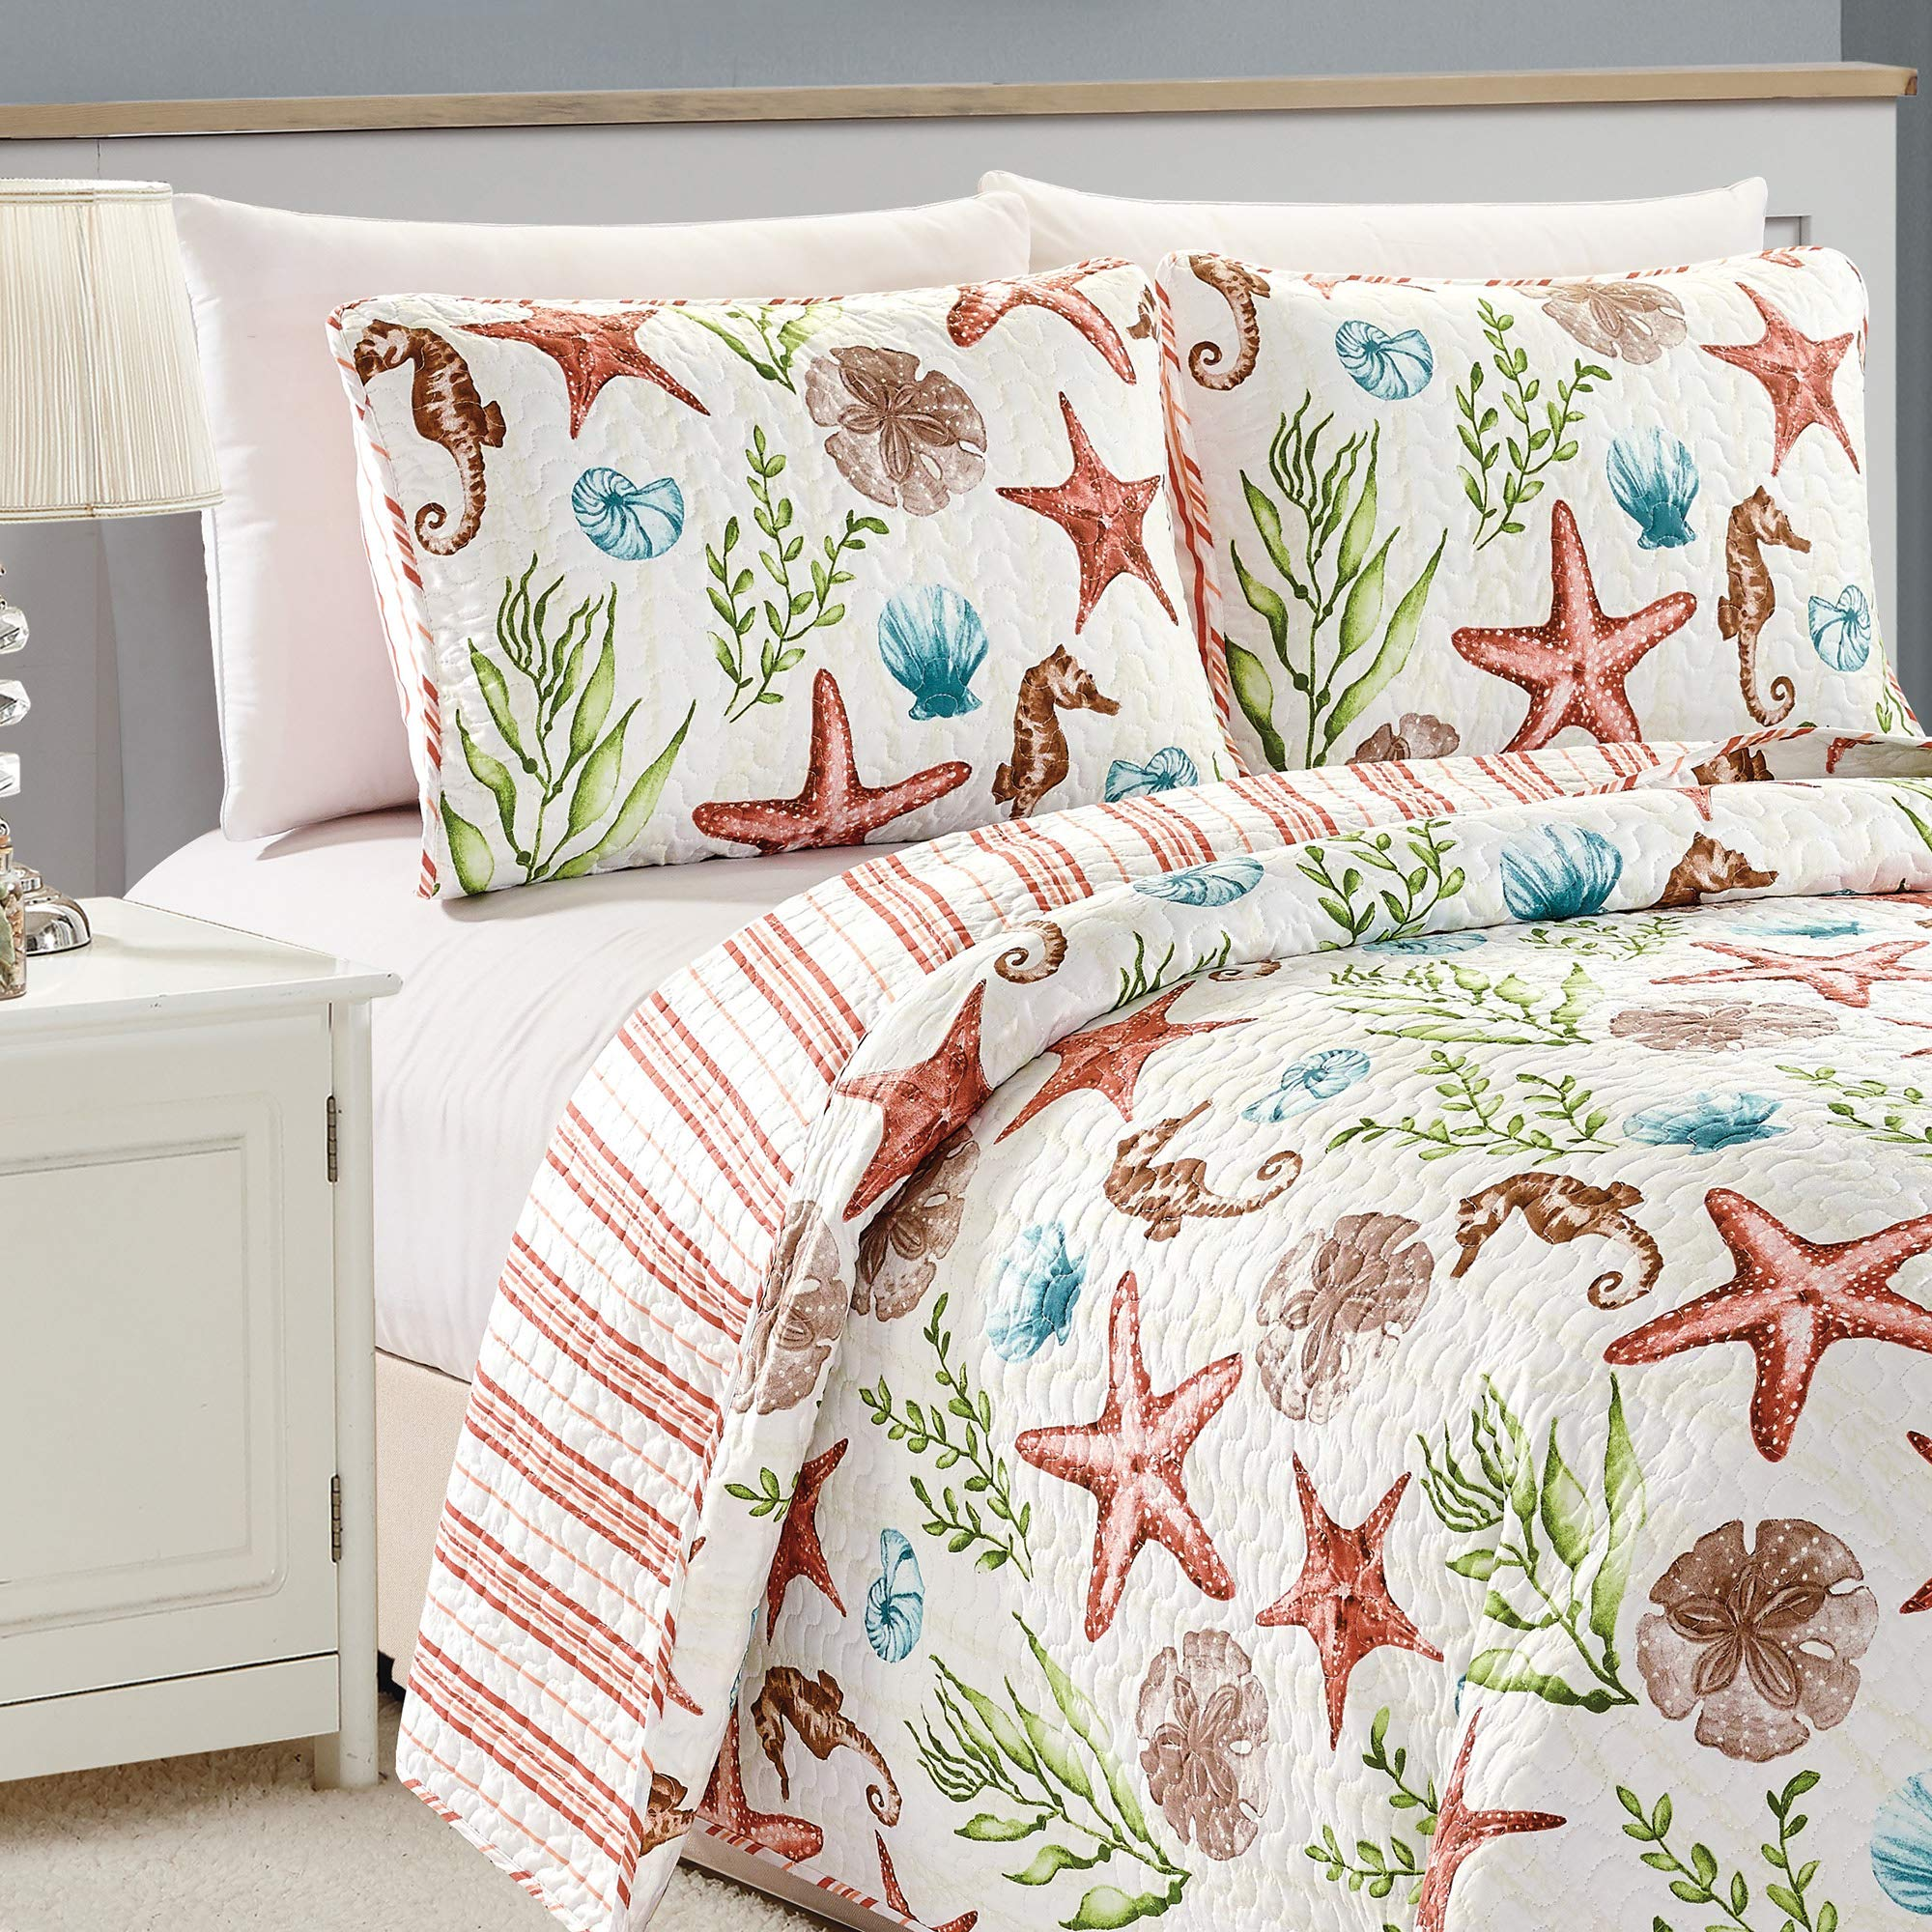 Great Bay Home Castaway Coastal Collection 3 Piece Quilt Set with Shams. Reversible Beach Theme Bedspread Coverlet. Machine Washable. (Full/Queen, Multi) by Great Bay Home (Image #4)